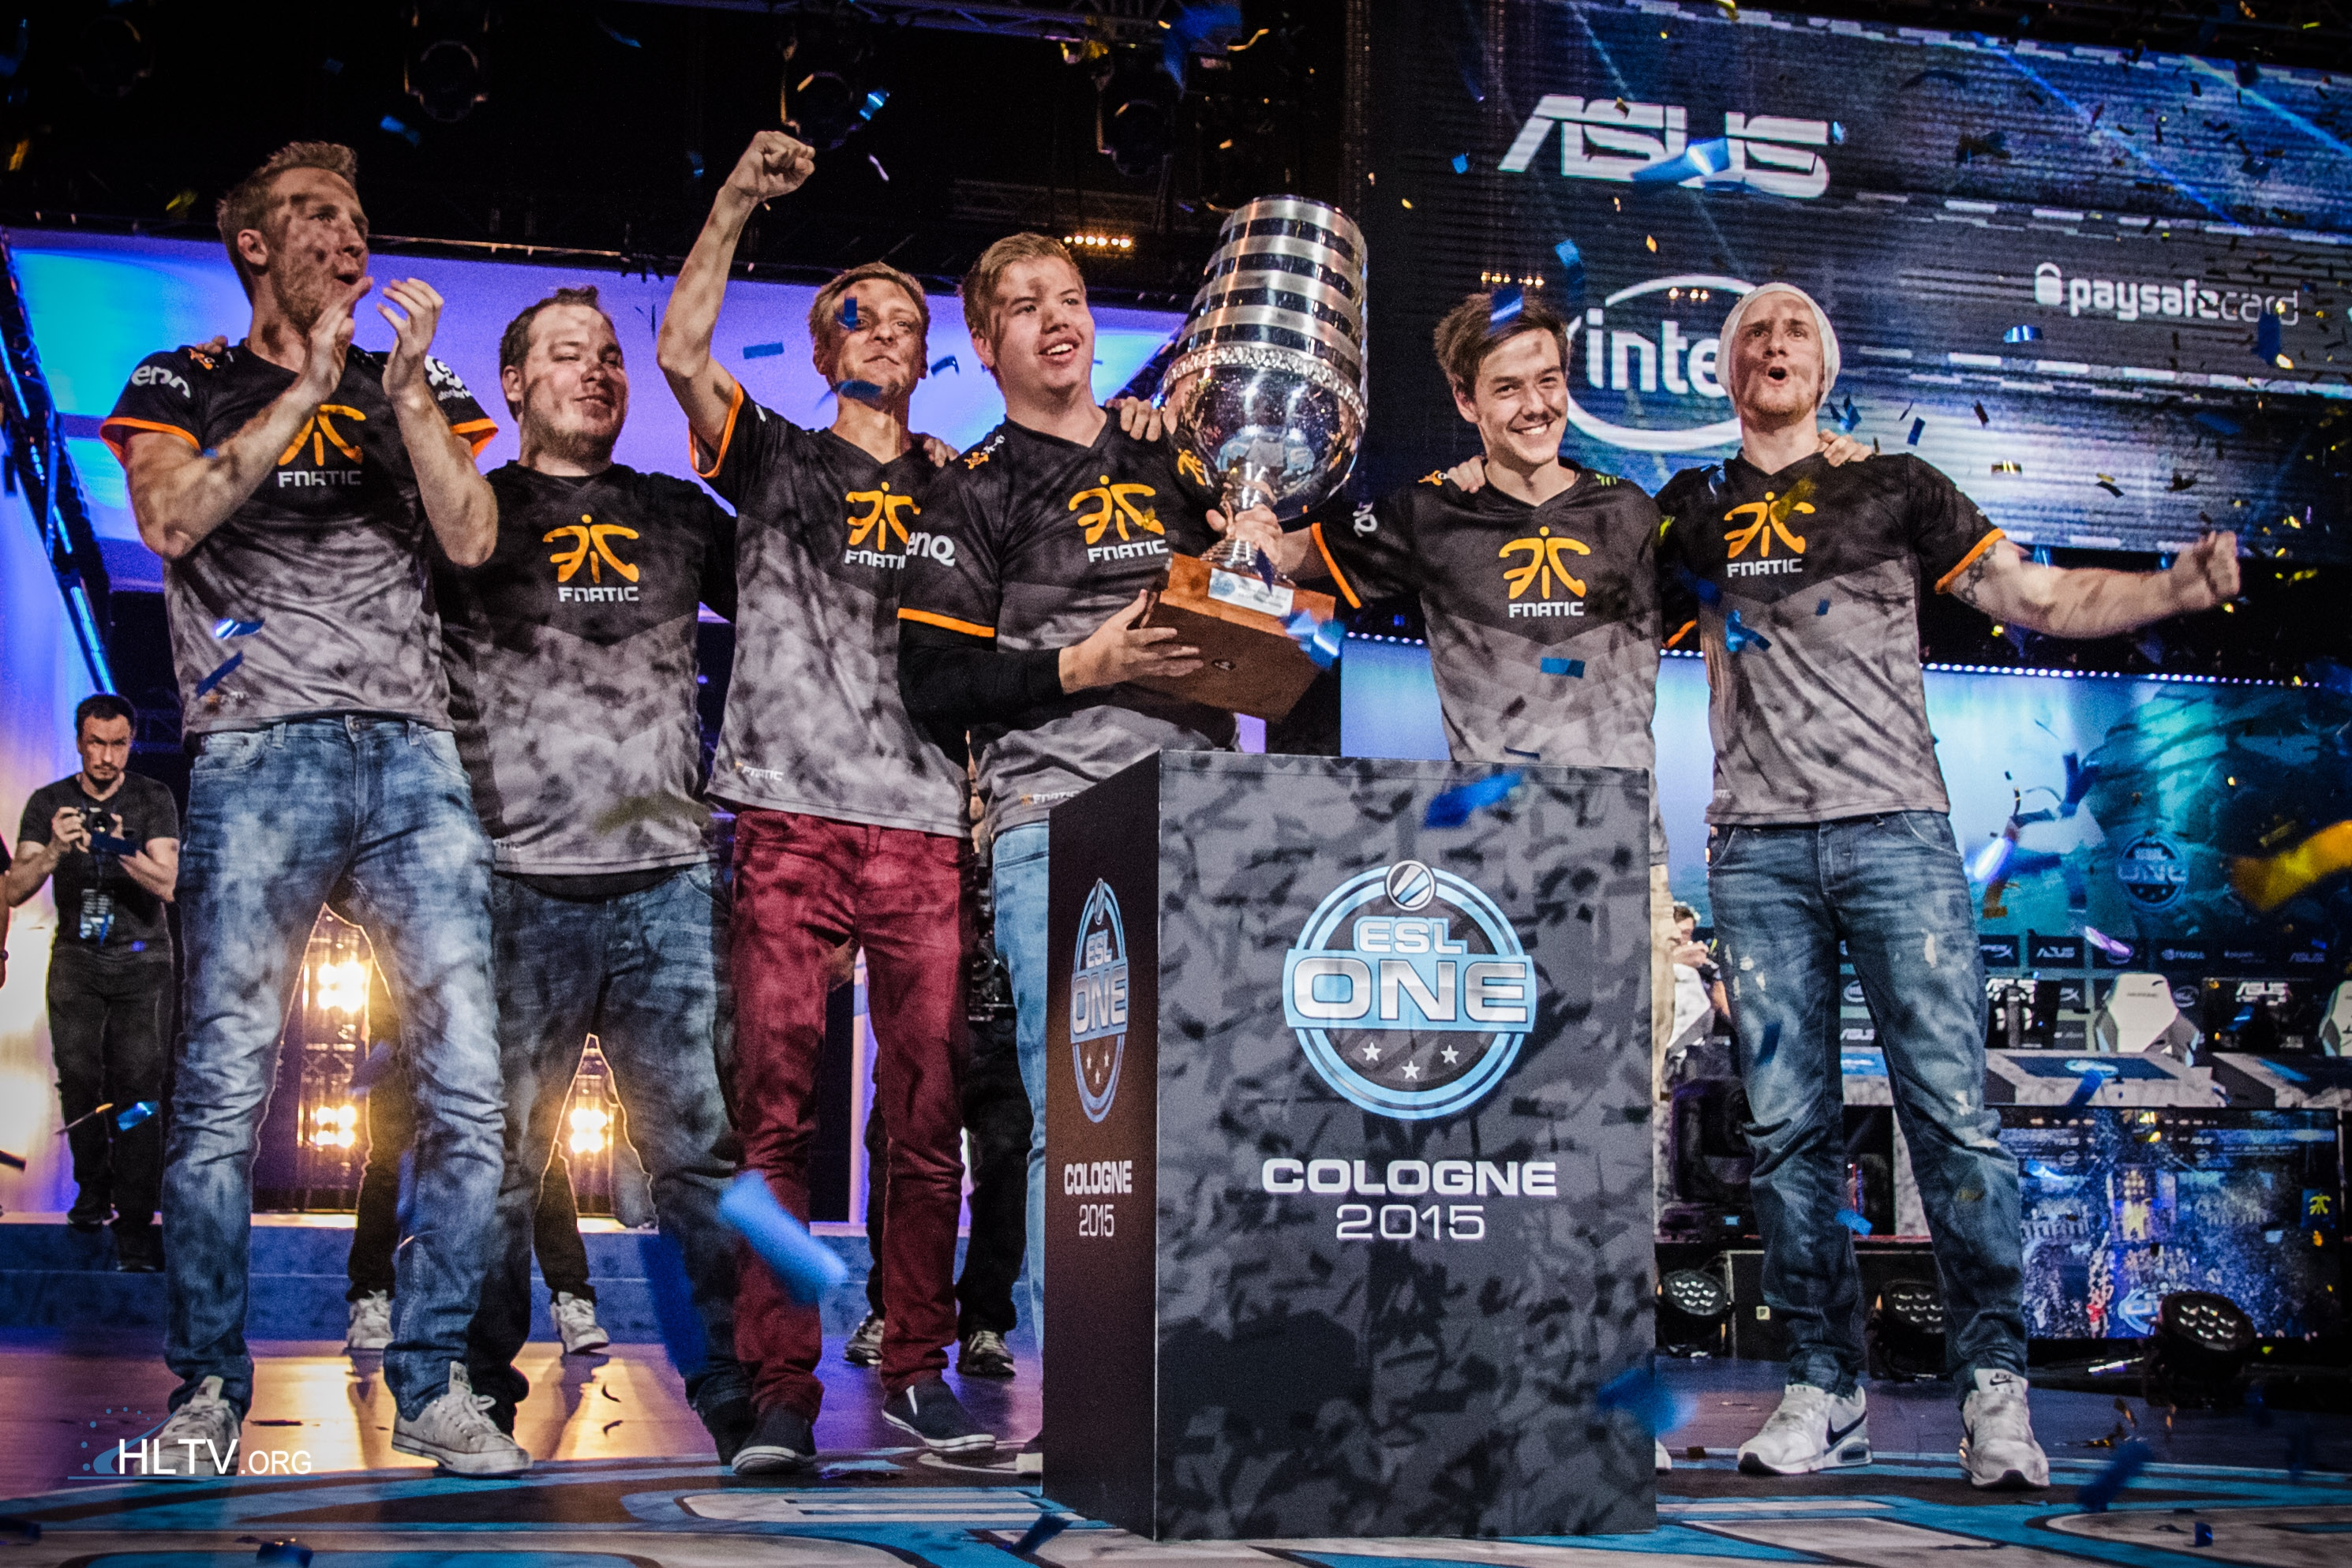 ESL One: Cologne 2015